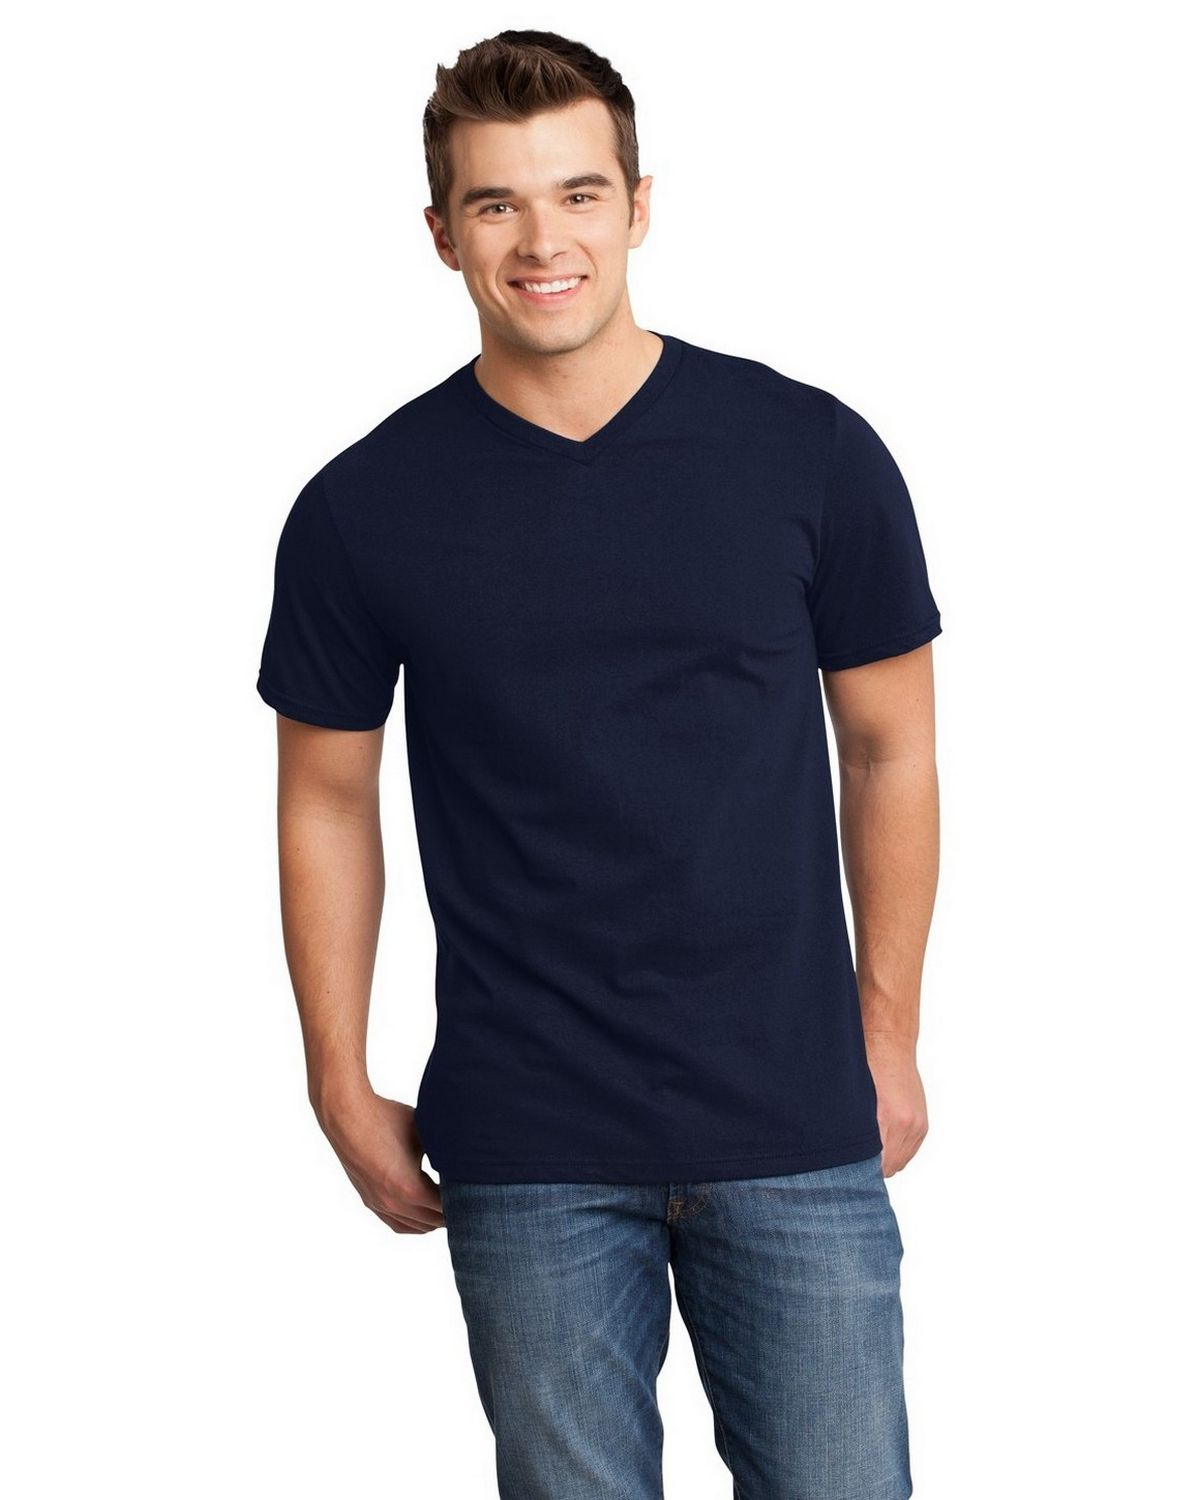 District DT6500 Very Important V-Neck Tee - Heathered Navy - XS DT6500